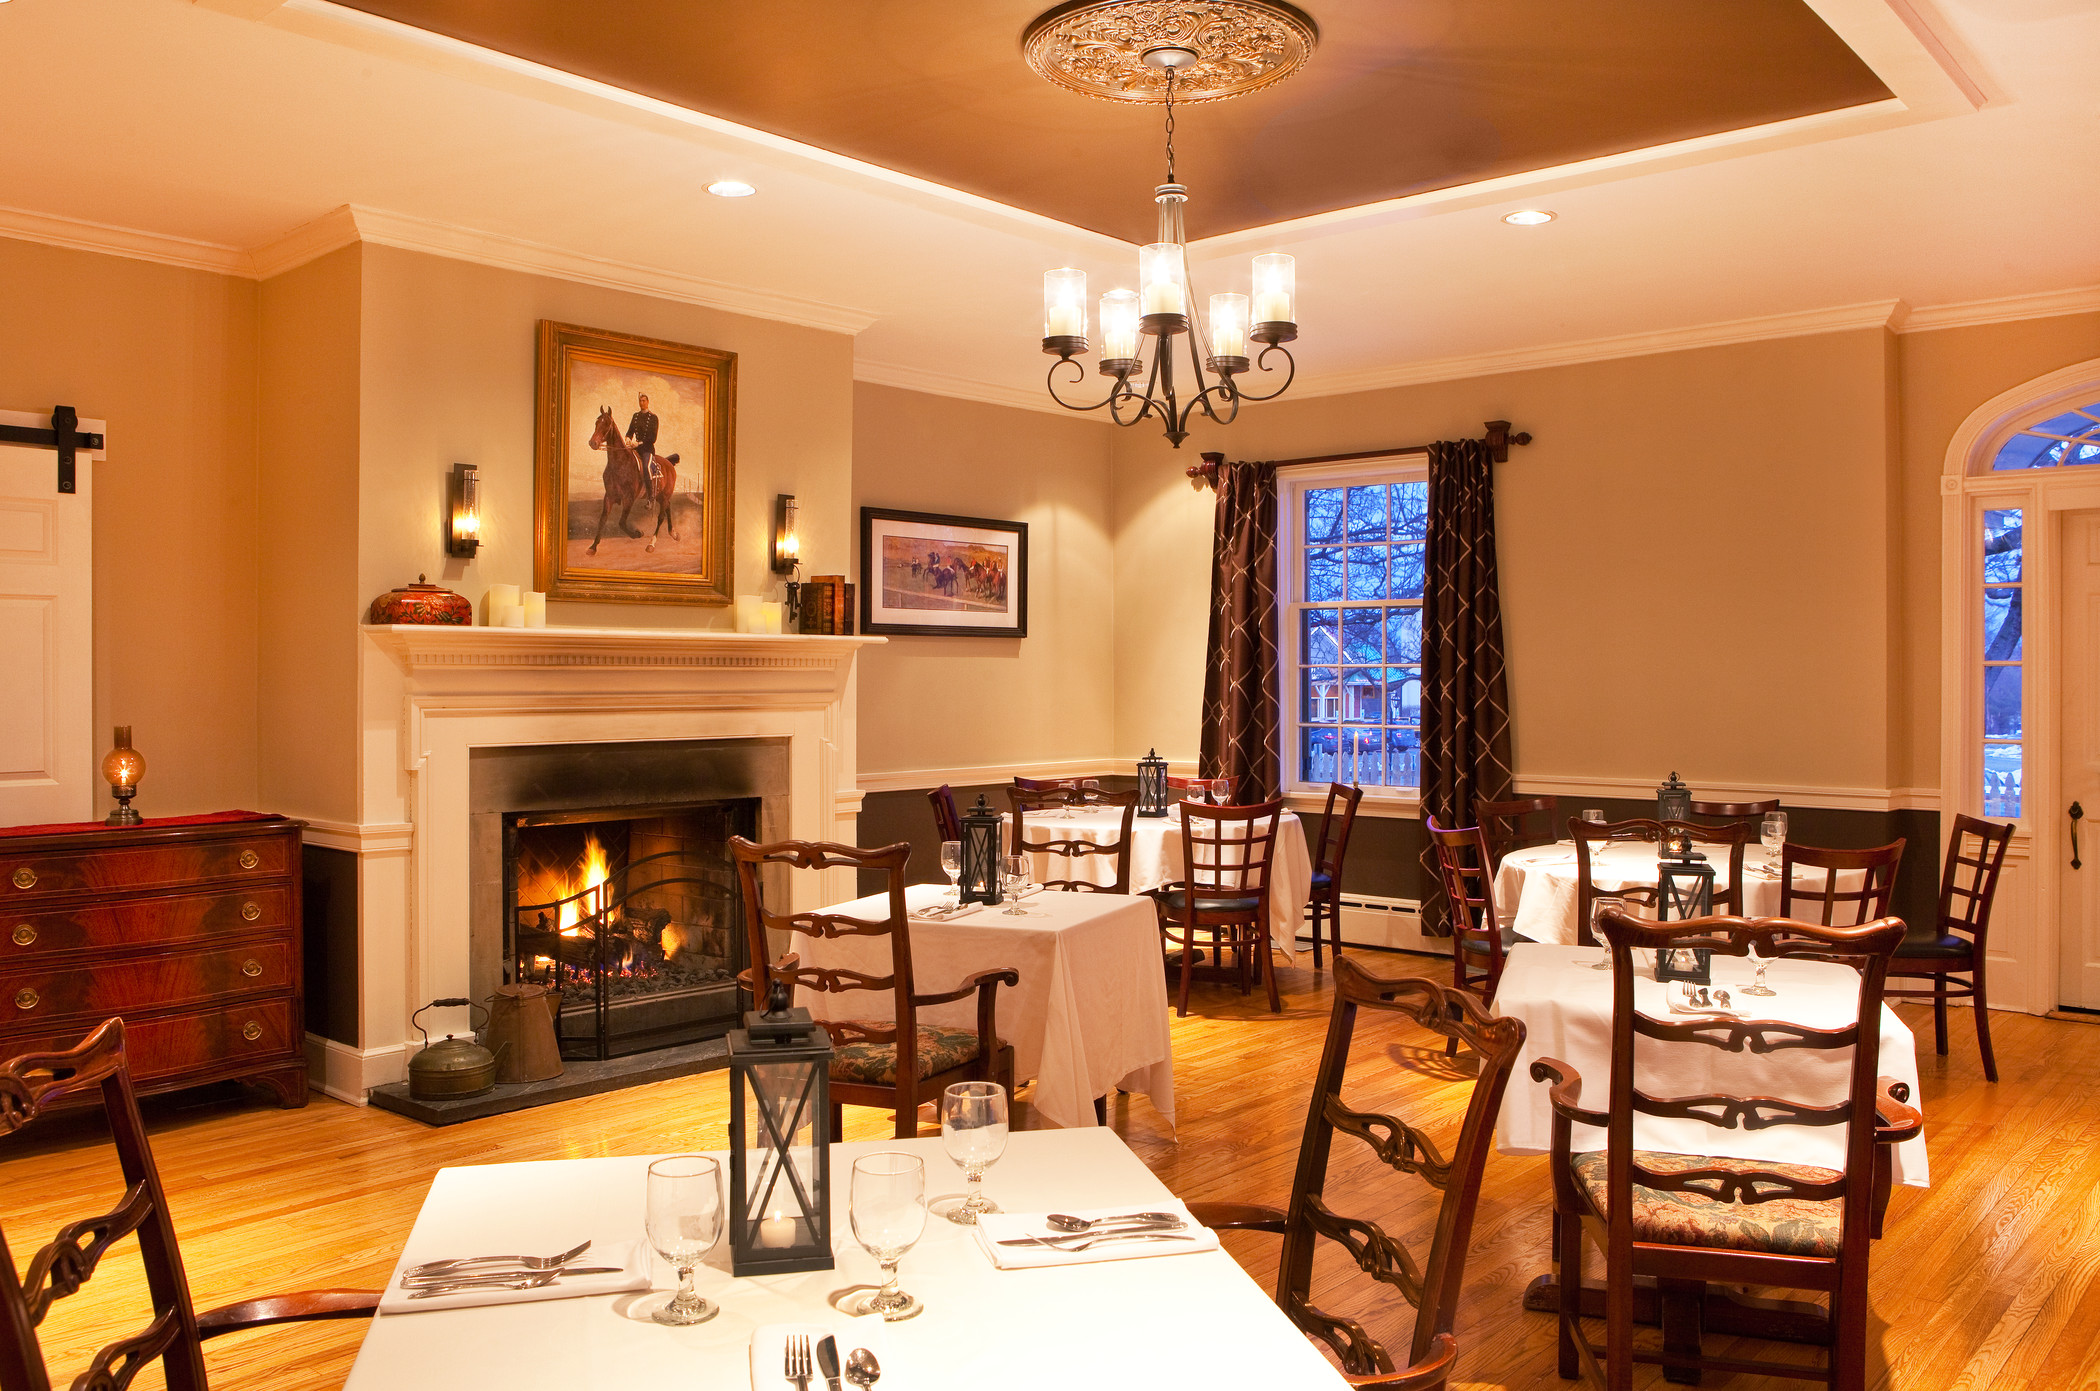 she867re-163723-White Horse Restaurant Dining Room.jpg